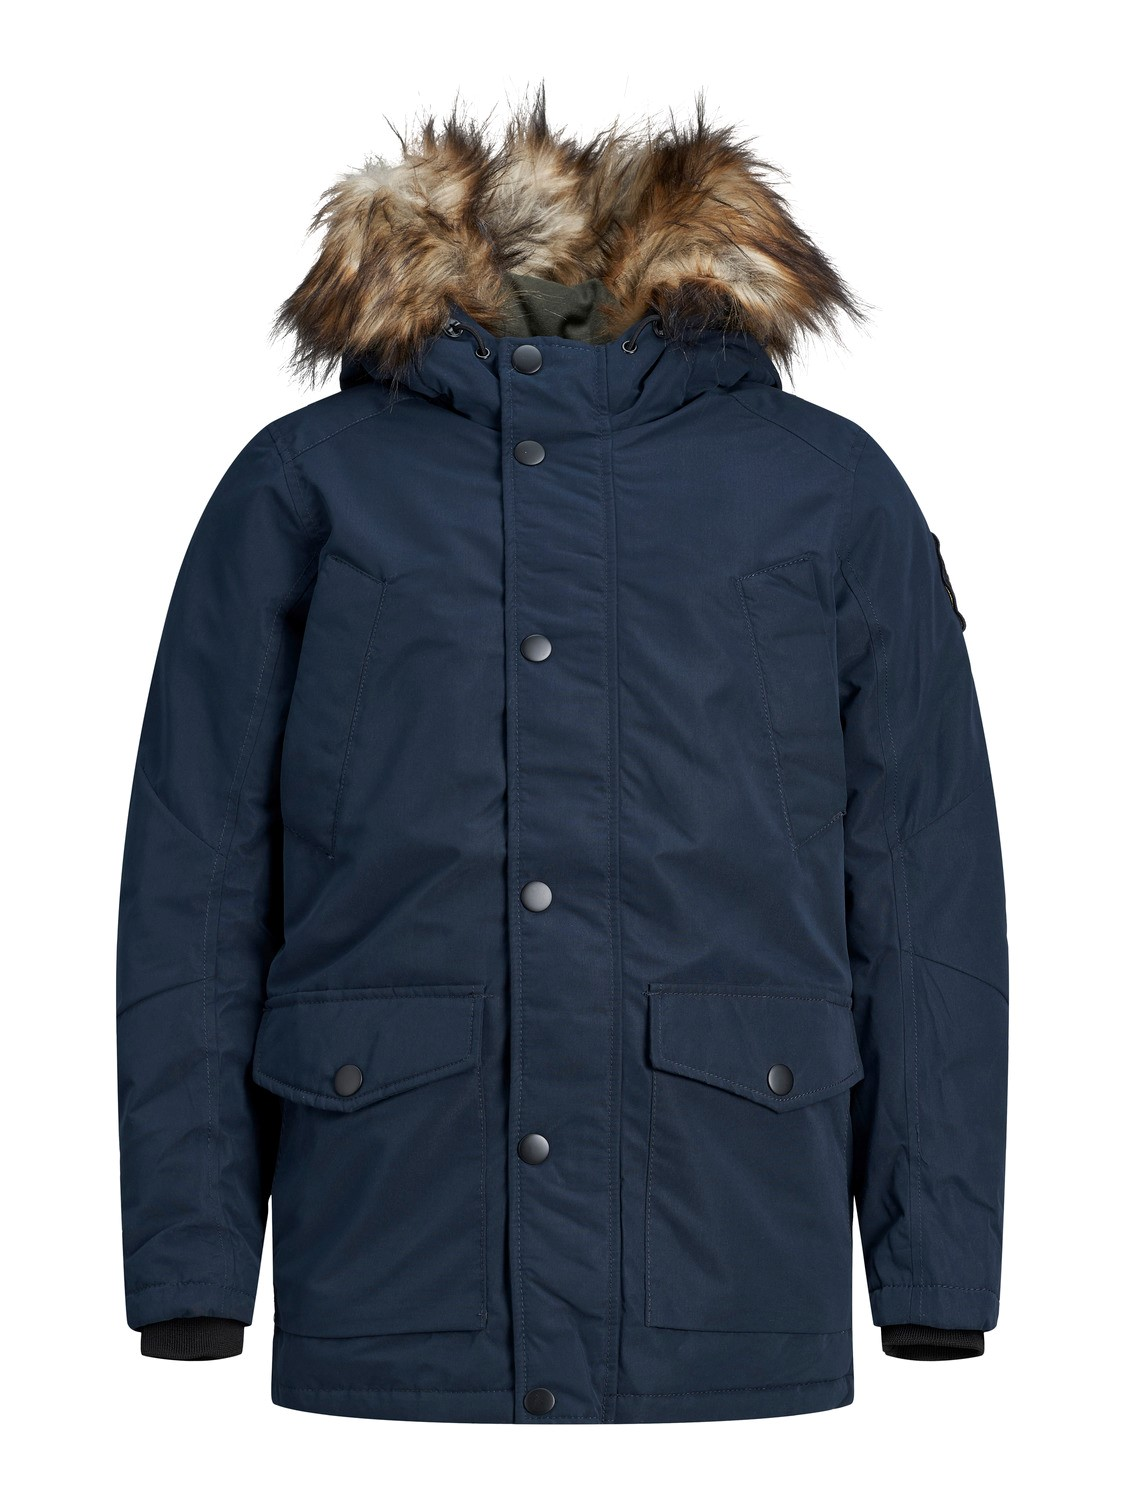 JACK & JONES JJSKY PARKA JACKET JR